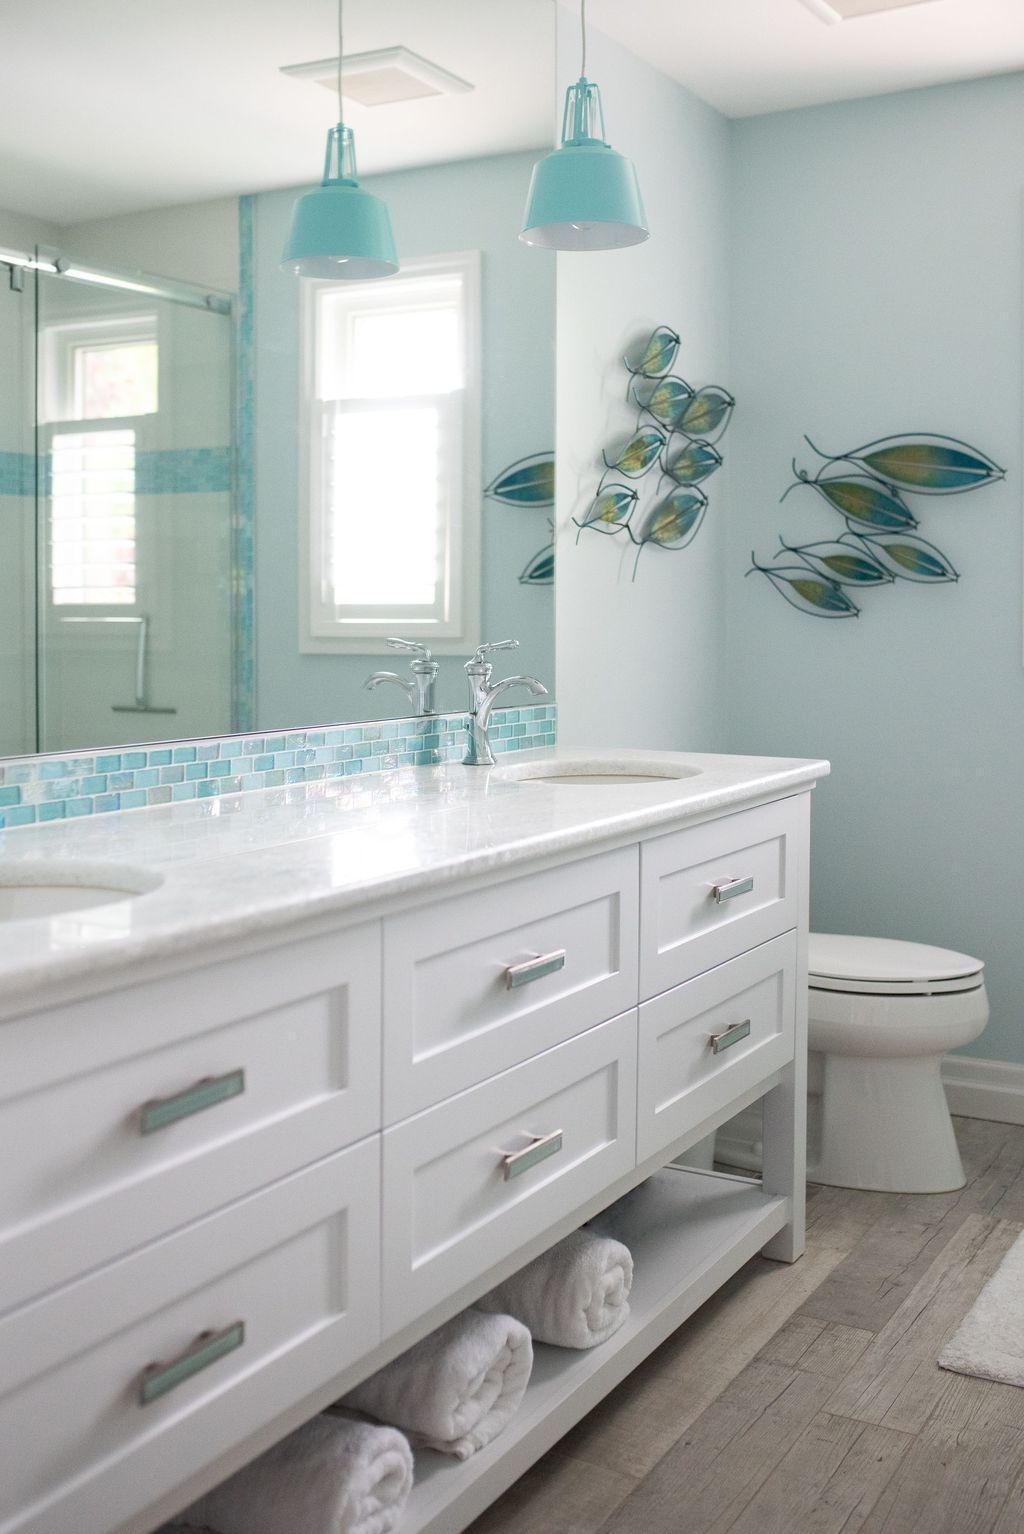 38 Awesome Coastal Style Bathroom Decorating Ideas Coastal Style Bathroom Beach Bathroom Decor Beachy Bathroom